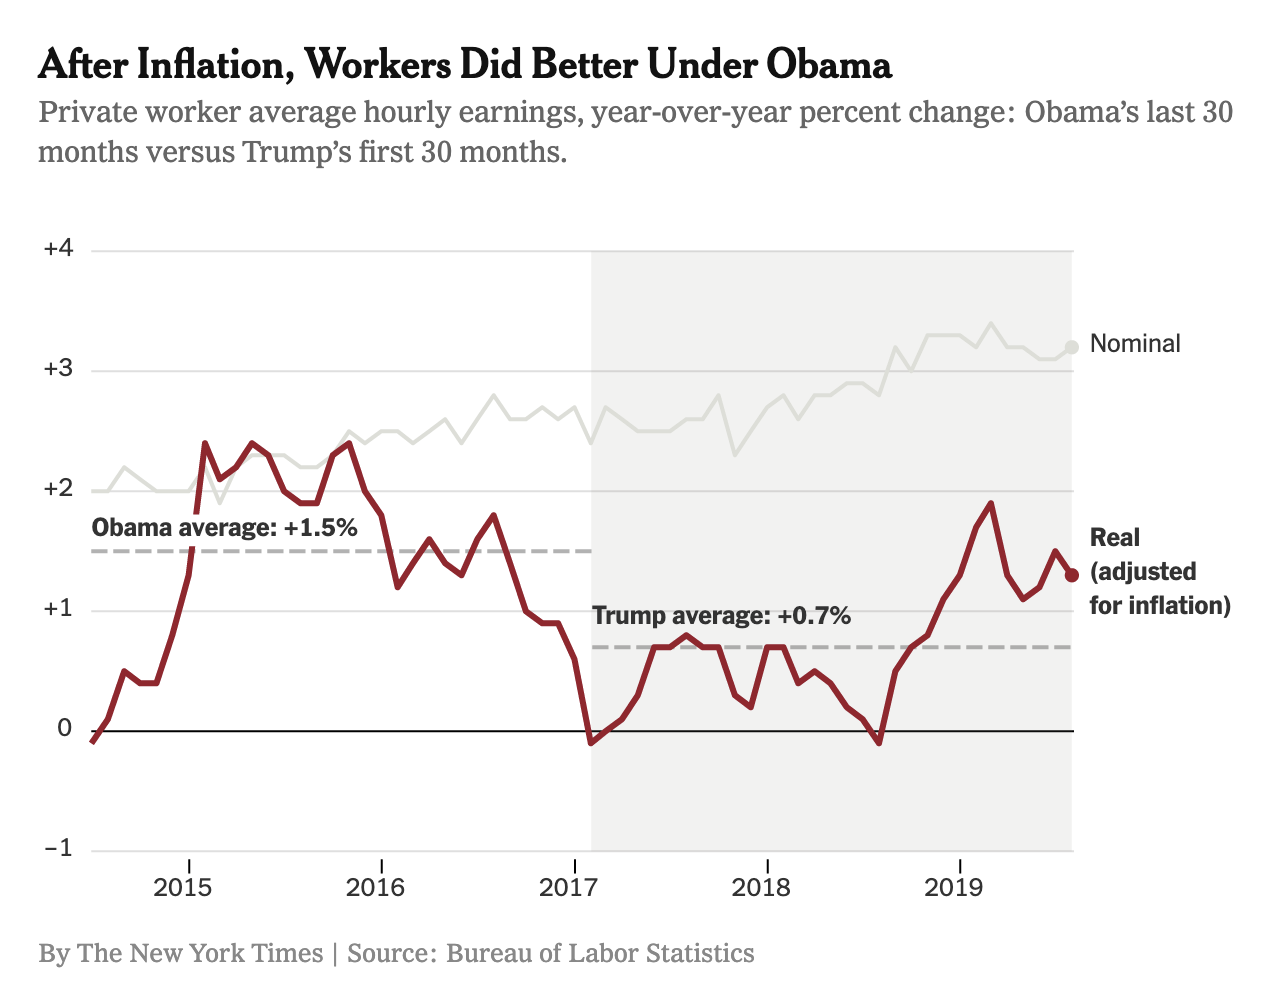 Inflation workers better under Obama economy